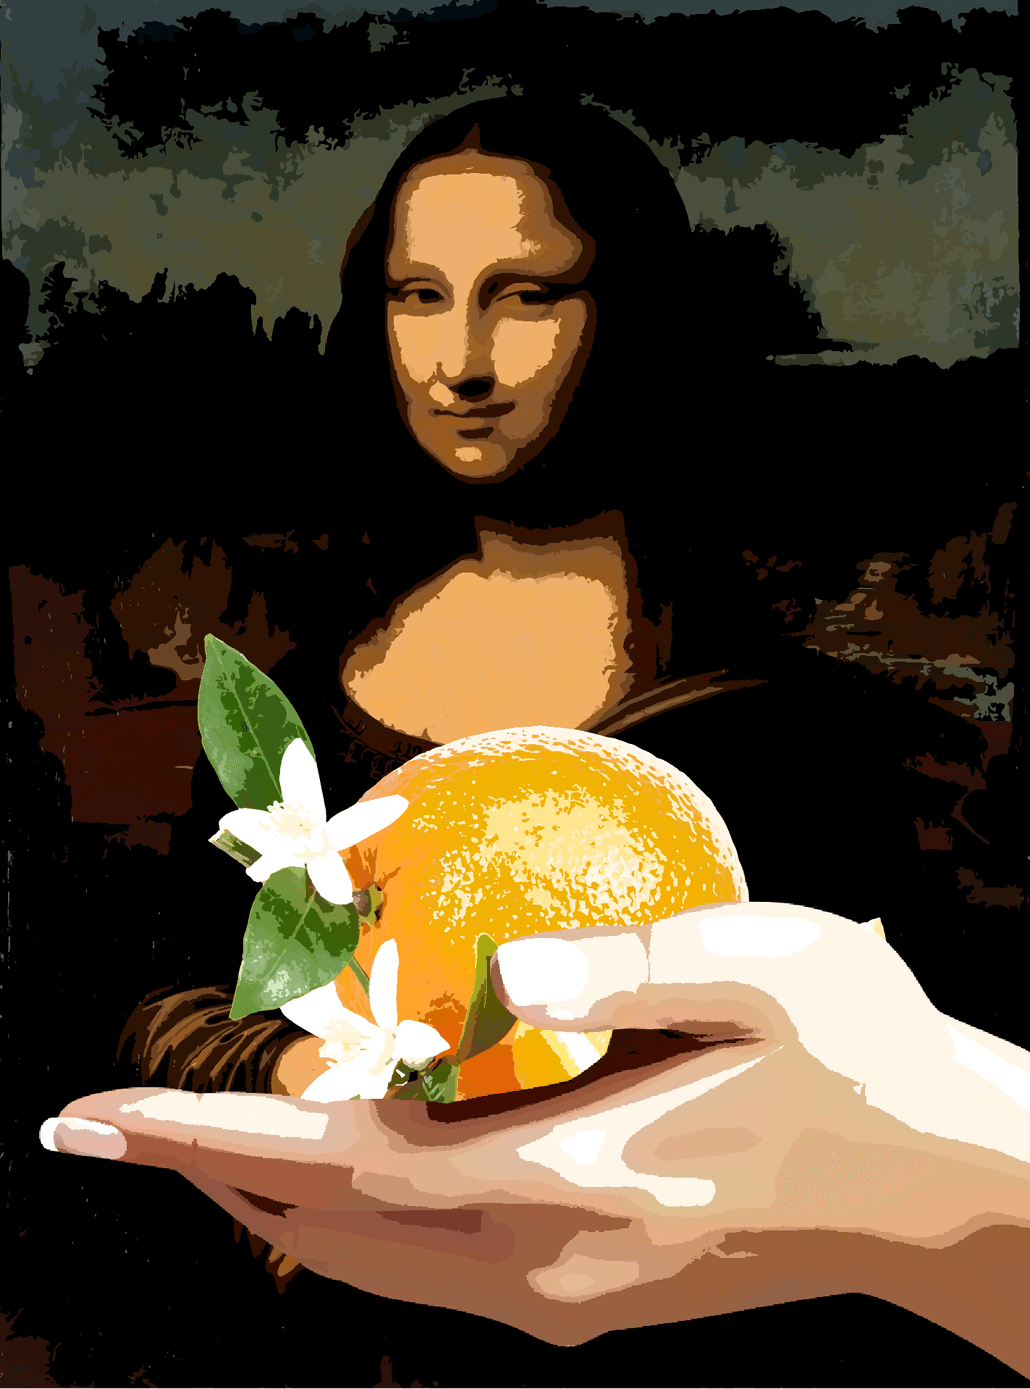 oh, did you know? Davinci loved Neroli and Sauranti is named after Neroli Orange?